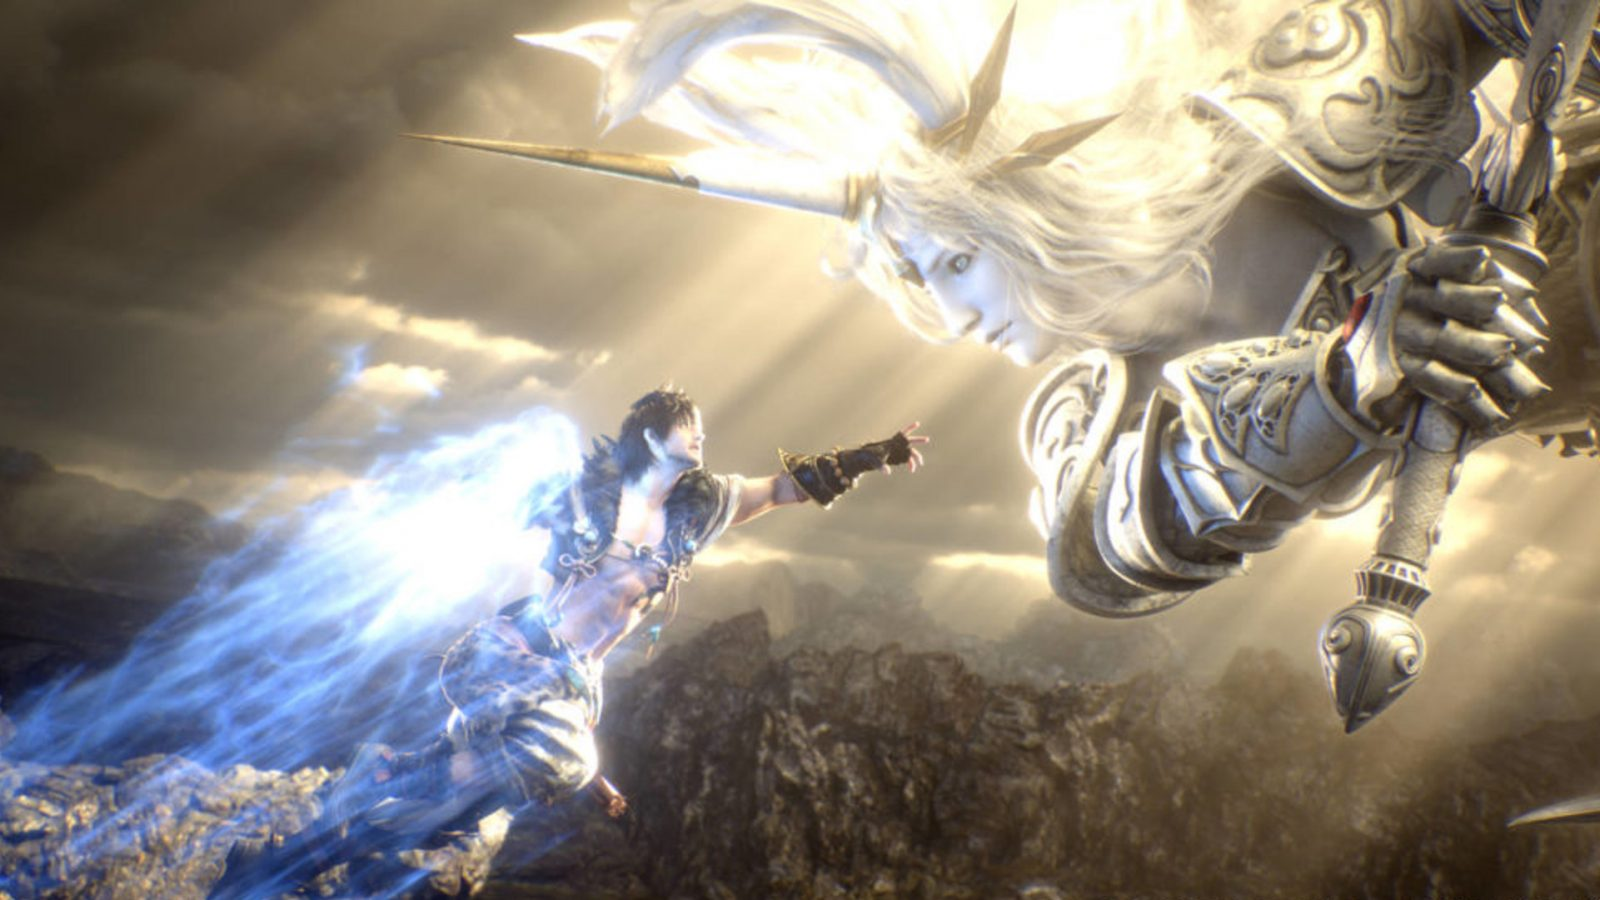 Final Fantasy XIV and all its expansions are half-off in the Square Enix Black Friday sale